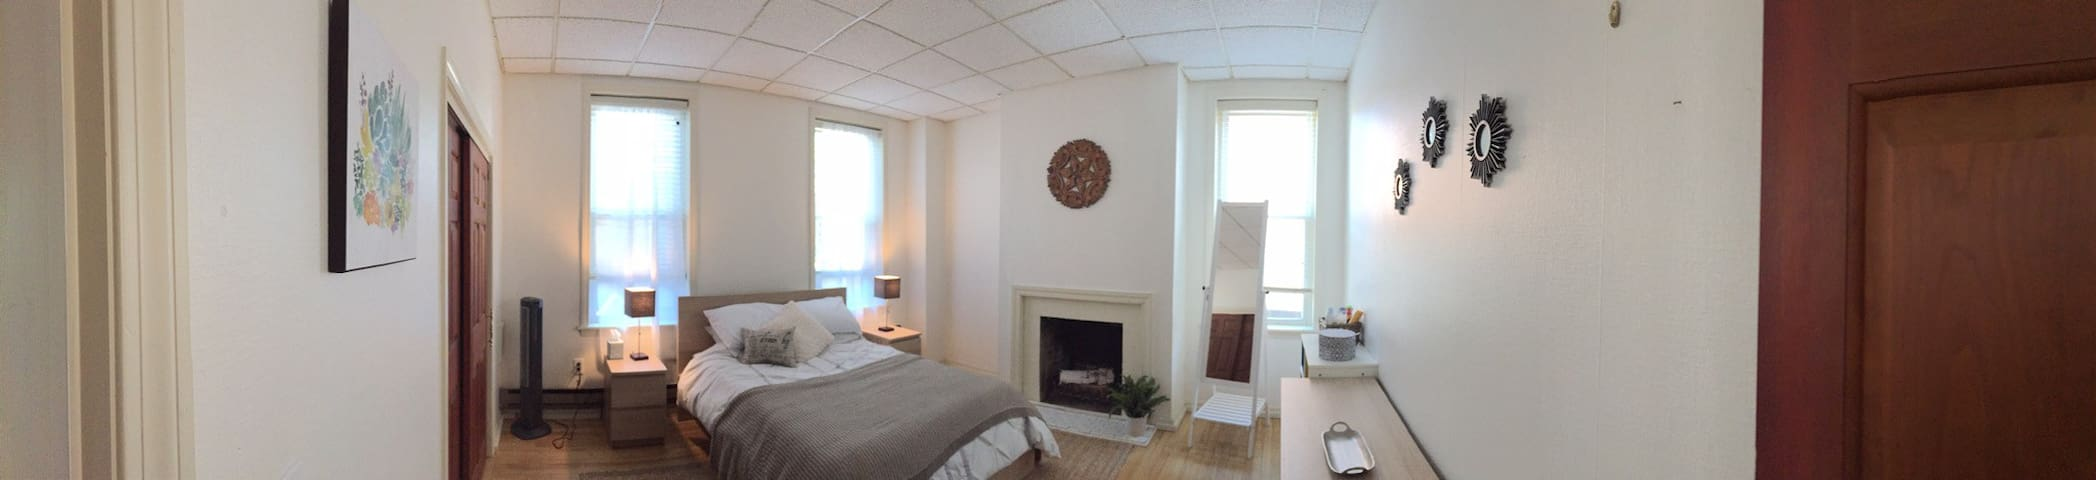 Downtown Apartment, Walk to Amherst College, UMASS - Amherst - Apartament